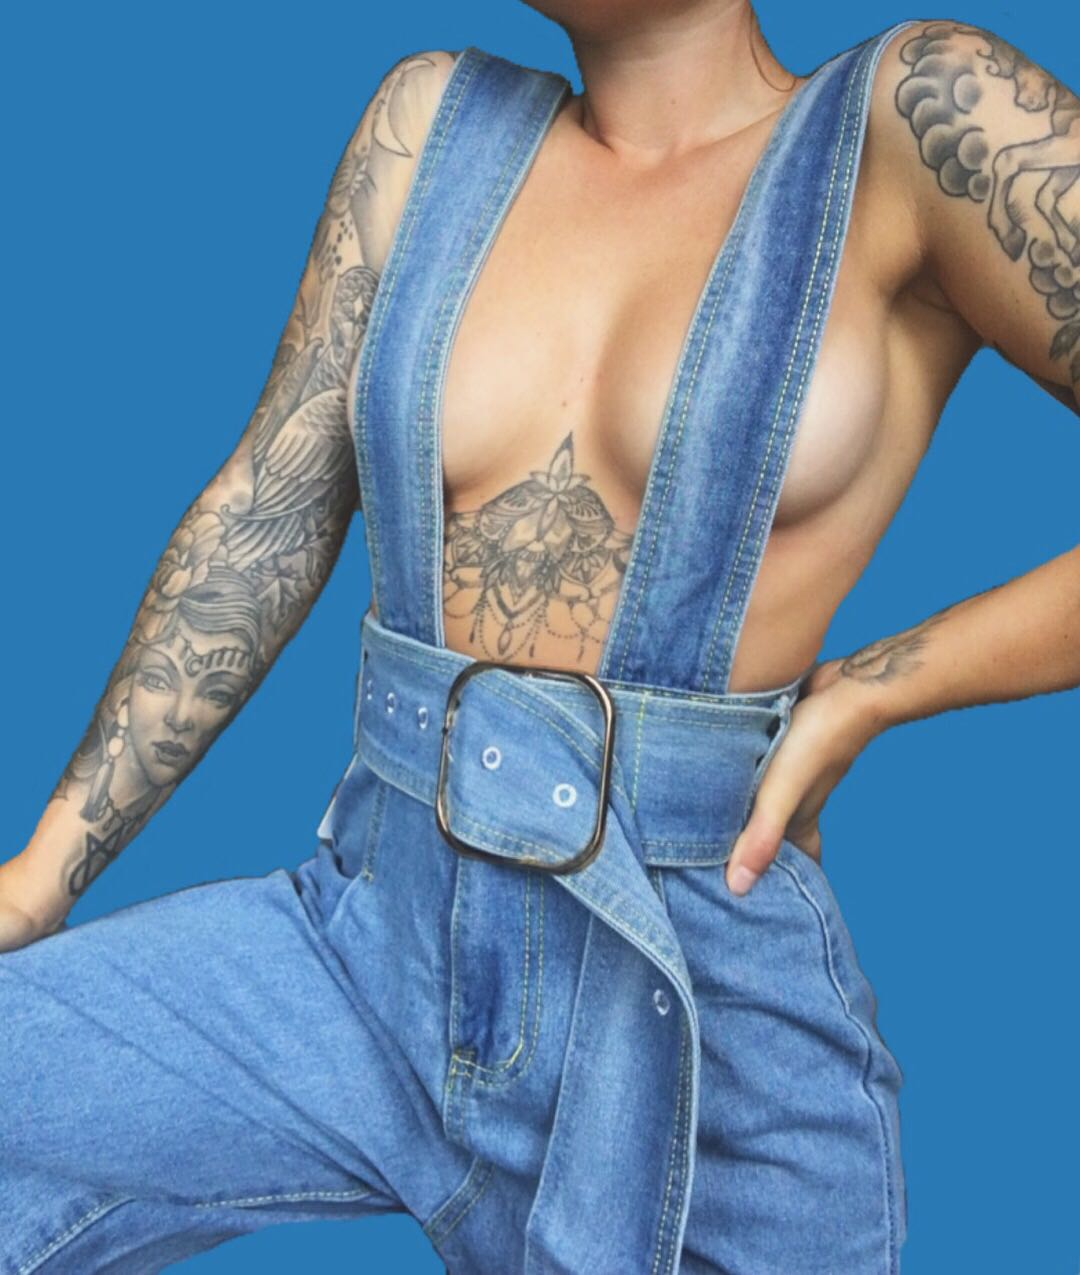 -currently out of stock- The most amazing groovy denim jumpsuit overalls!